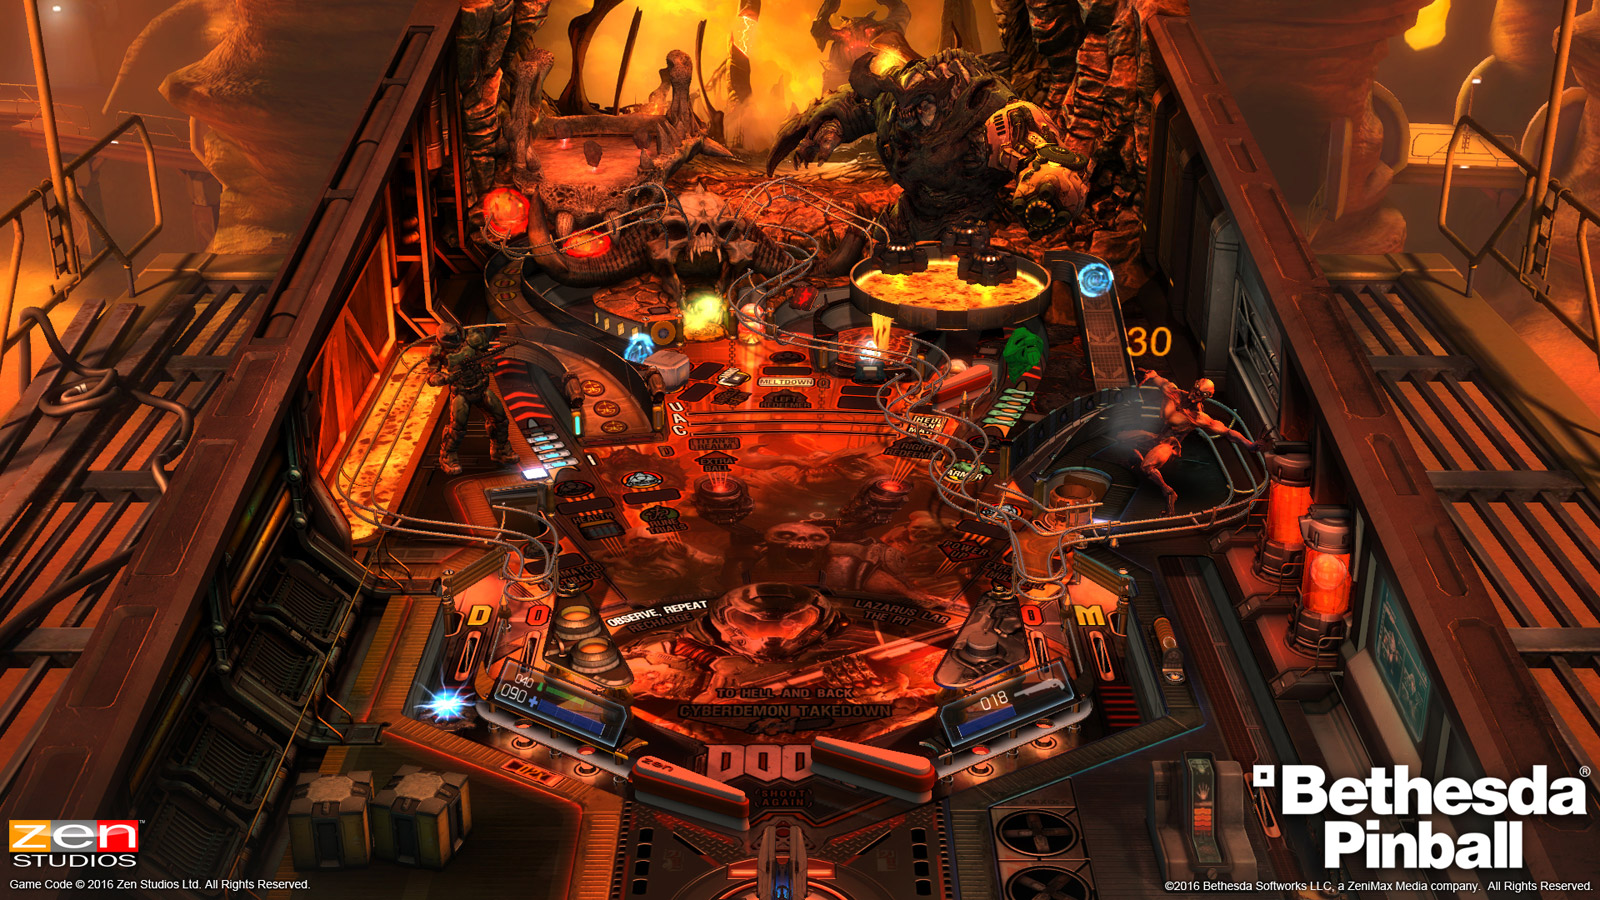 Realistic Play and Fantastic Table Design Recreate the Age of Pinball